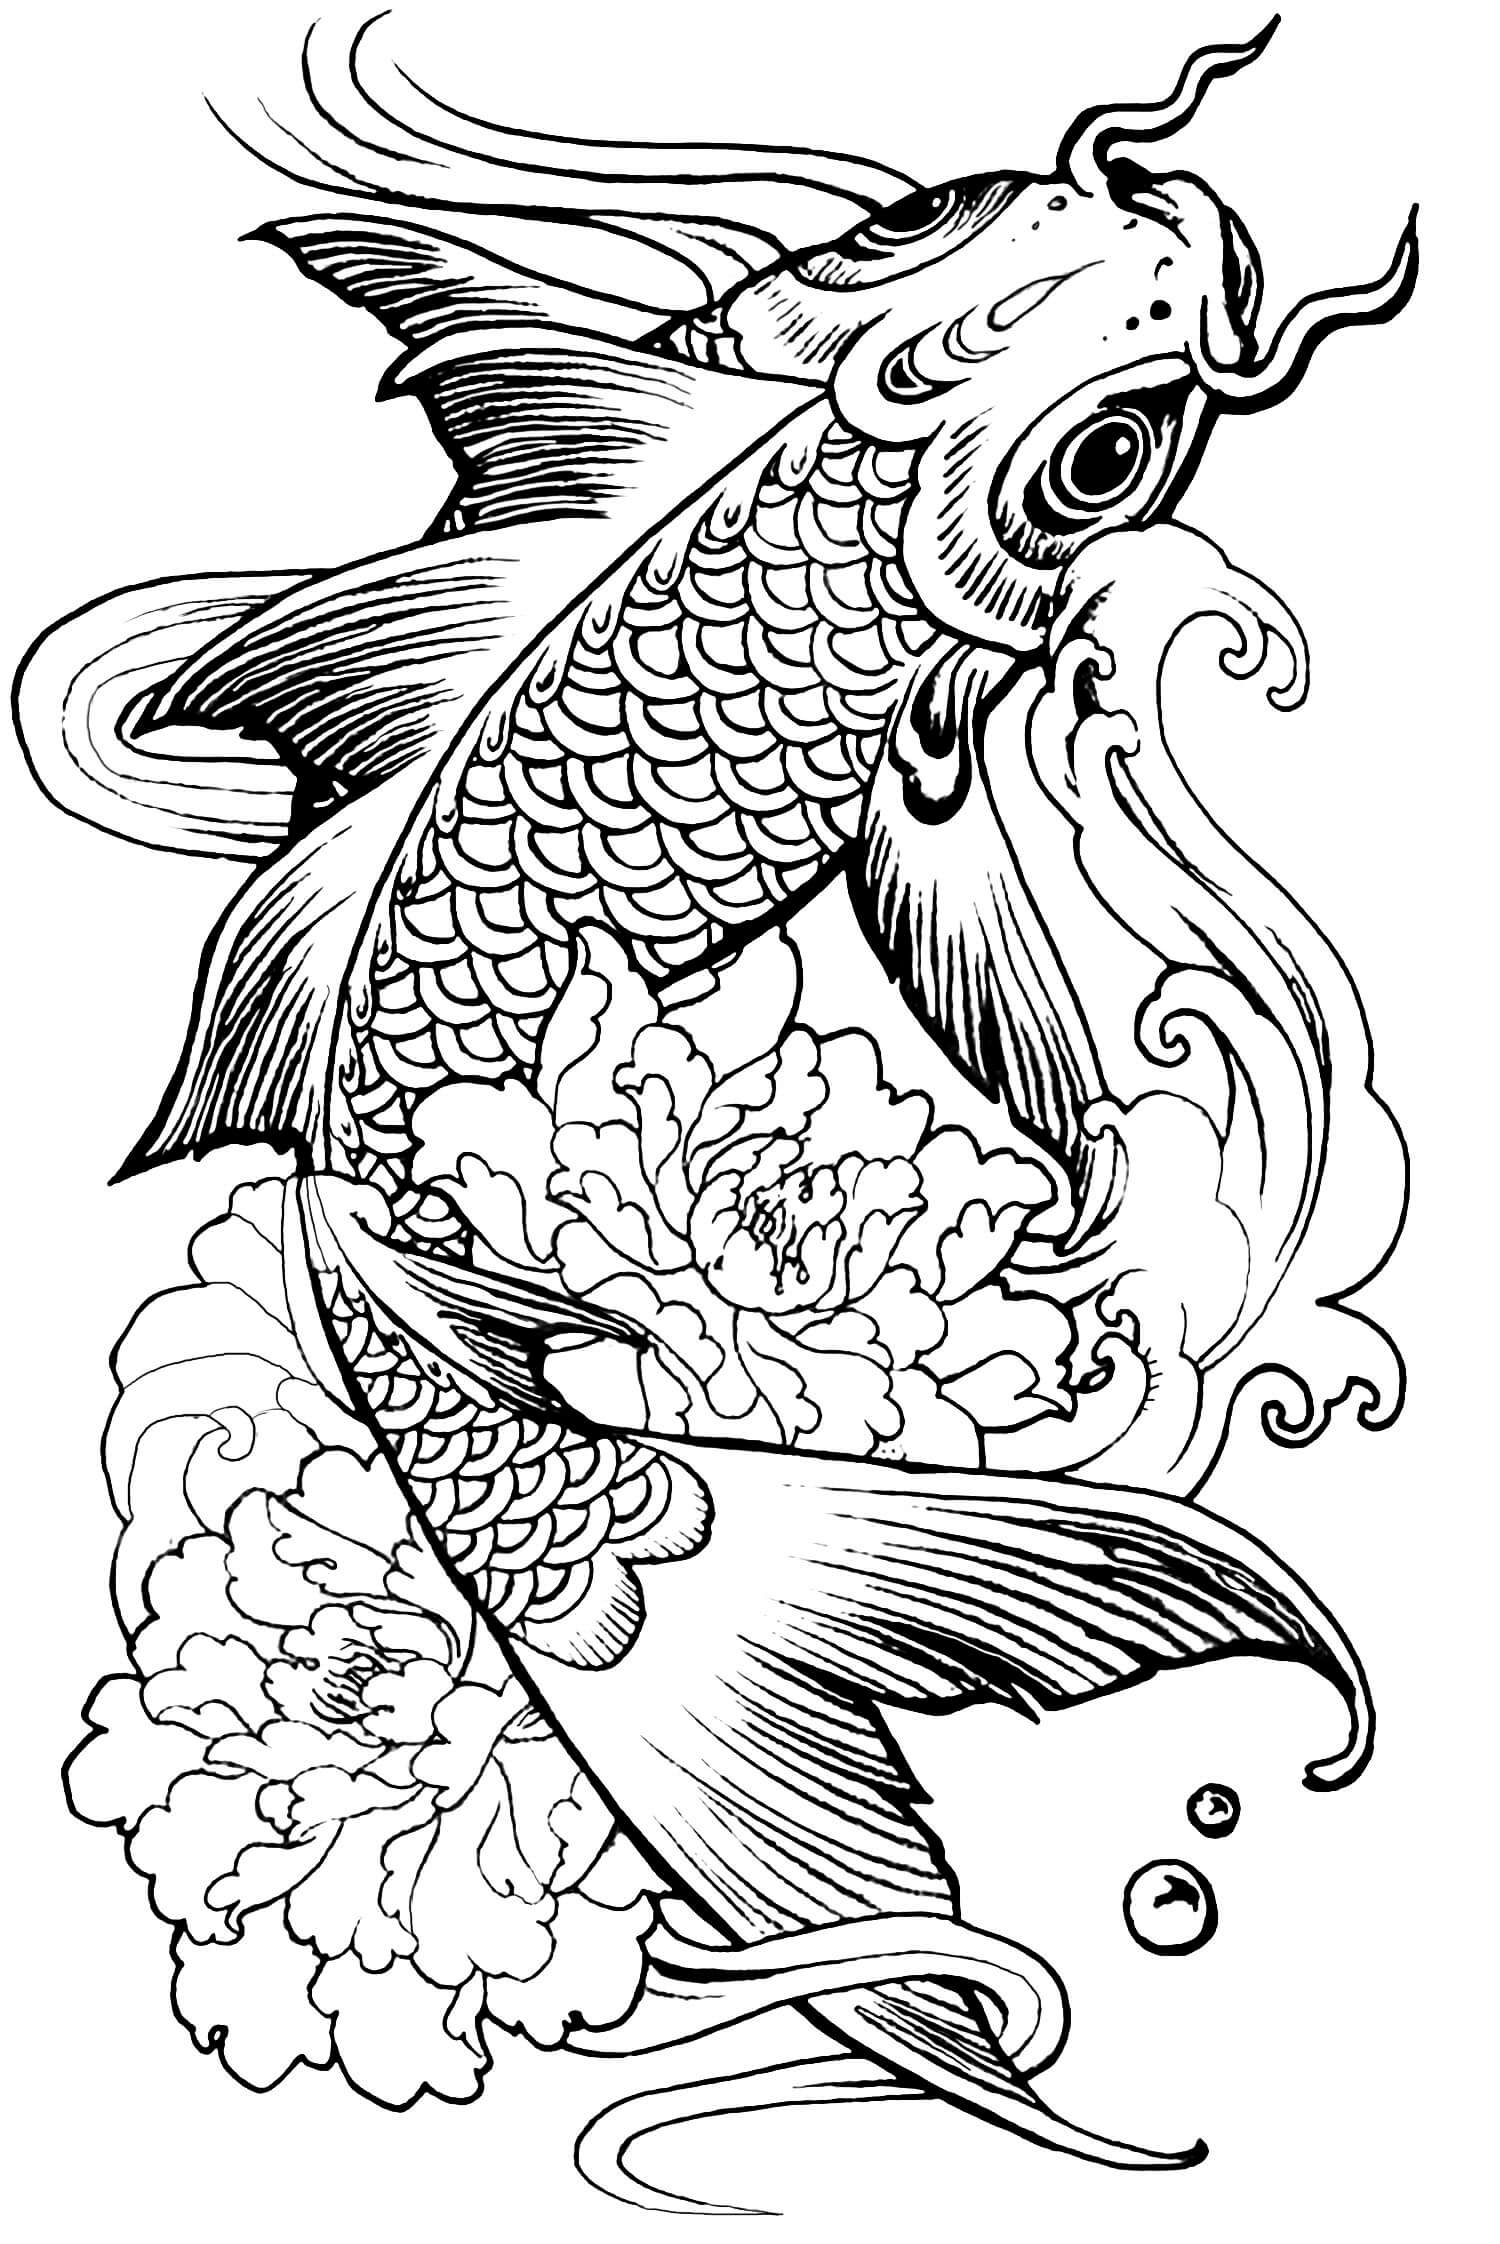 colouring sheets animals animal coloring pages for adults best coloring pages for sheets animals colouring